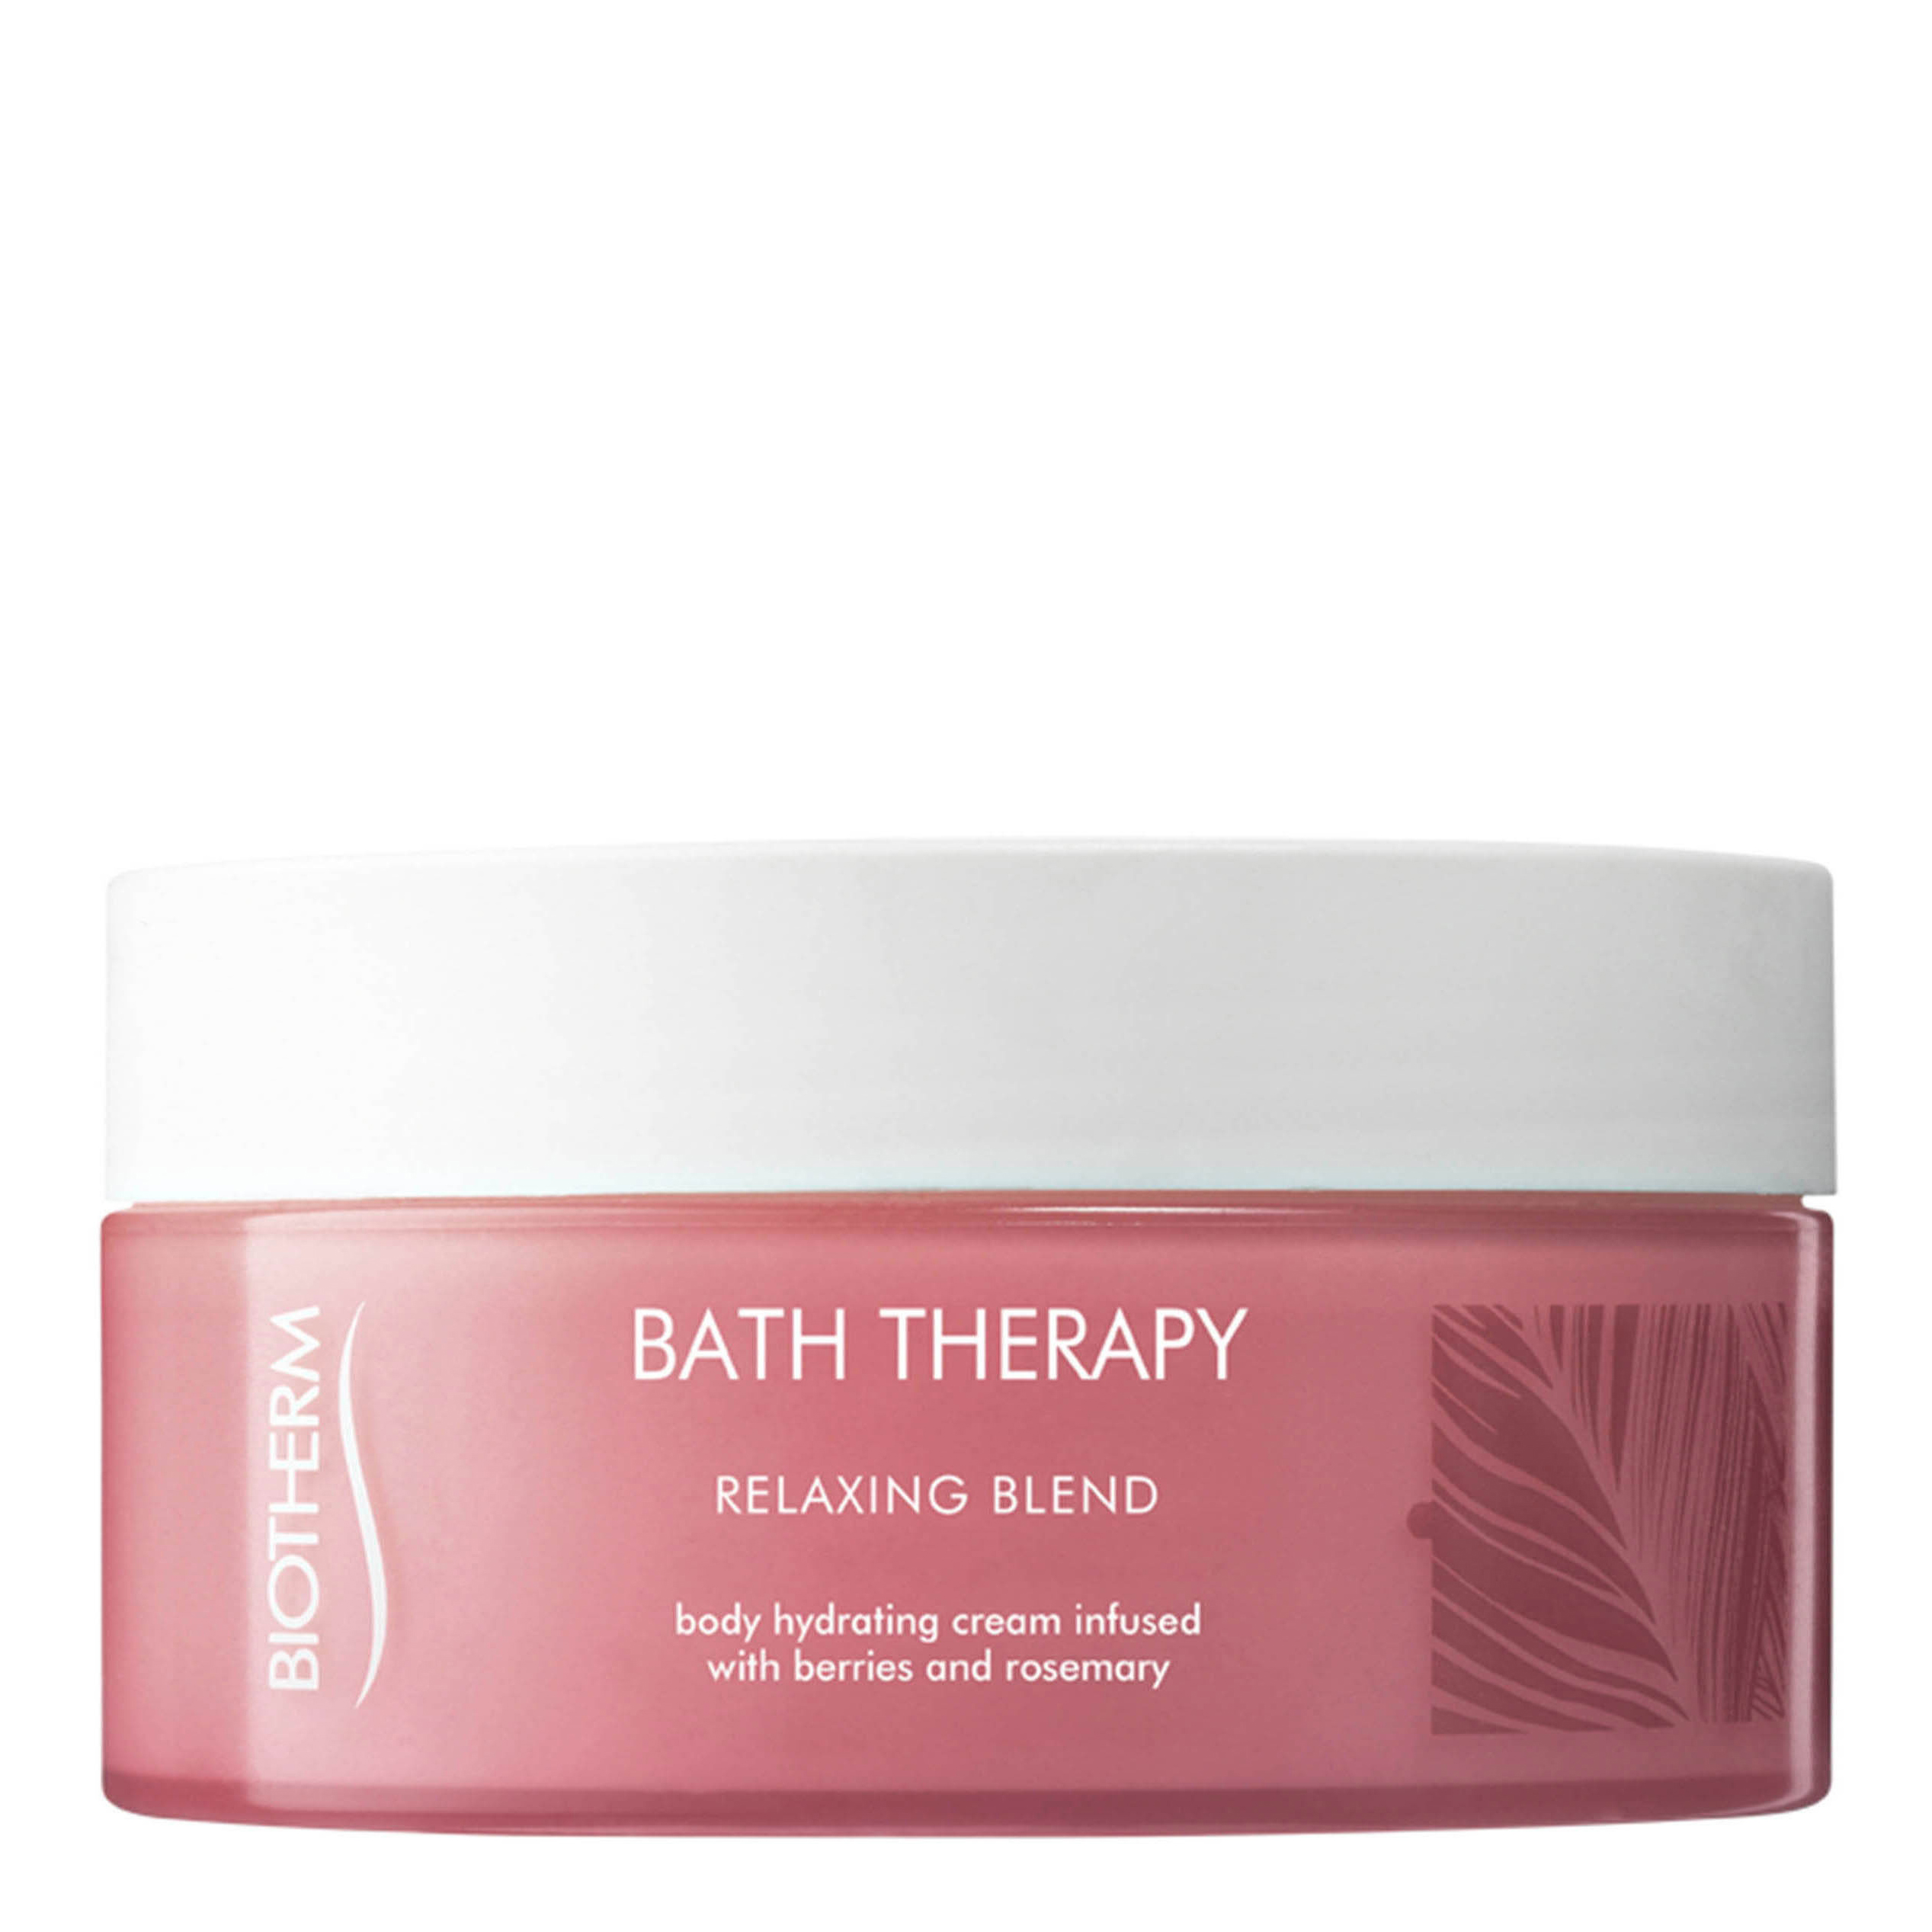 Bath Therapy. BIOTHERM Bath Therapy Relaxing Blend Hydrating Cream 200ml